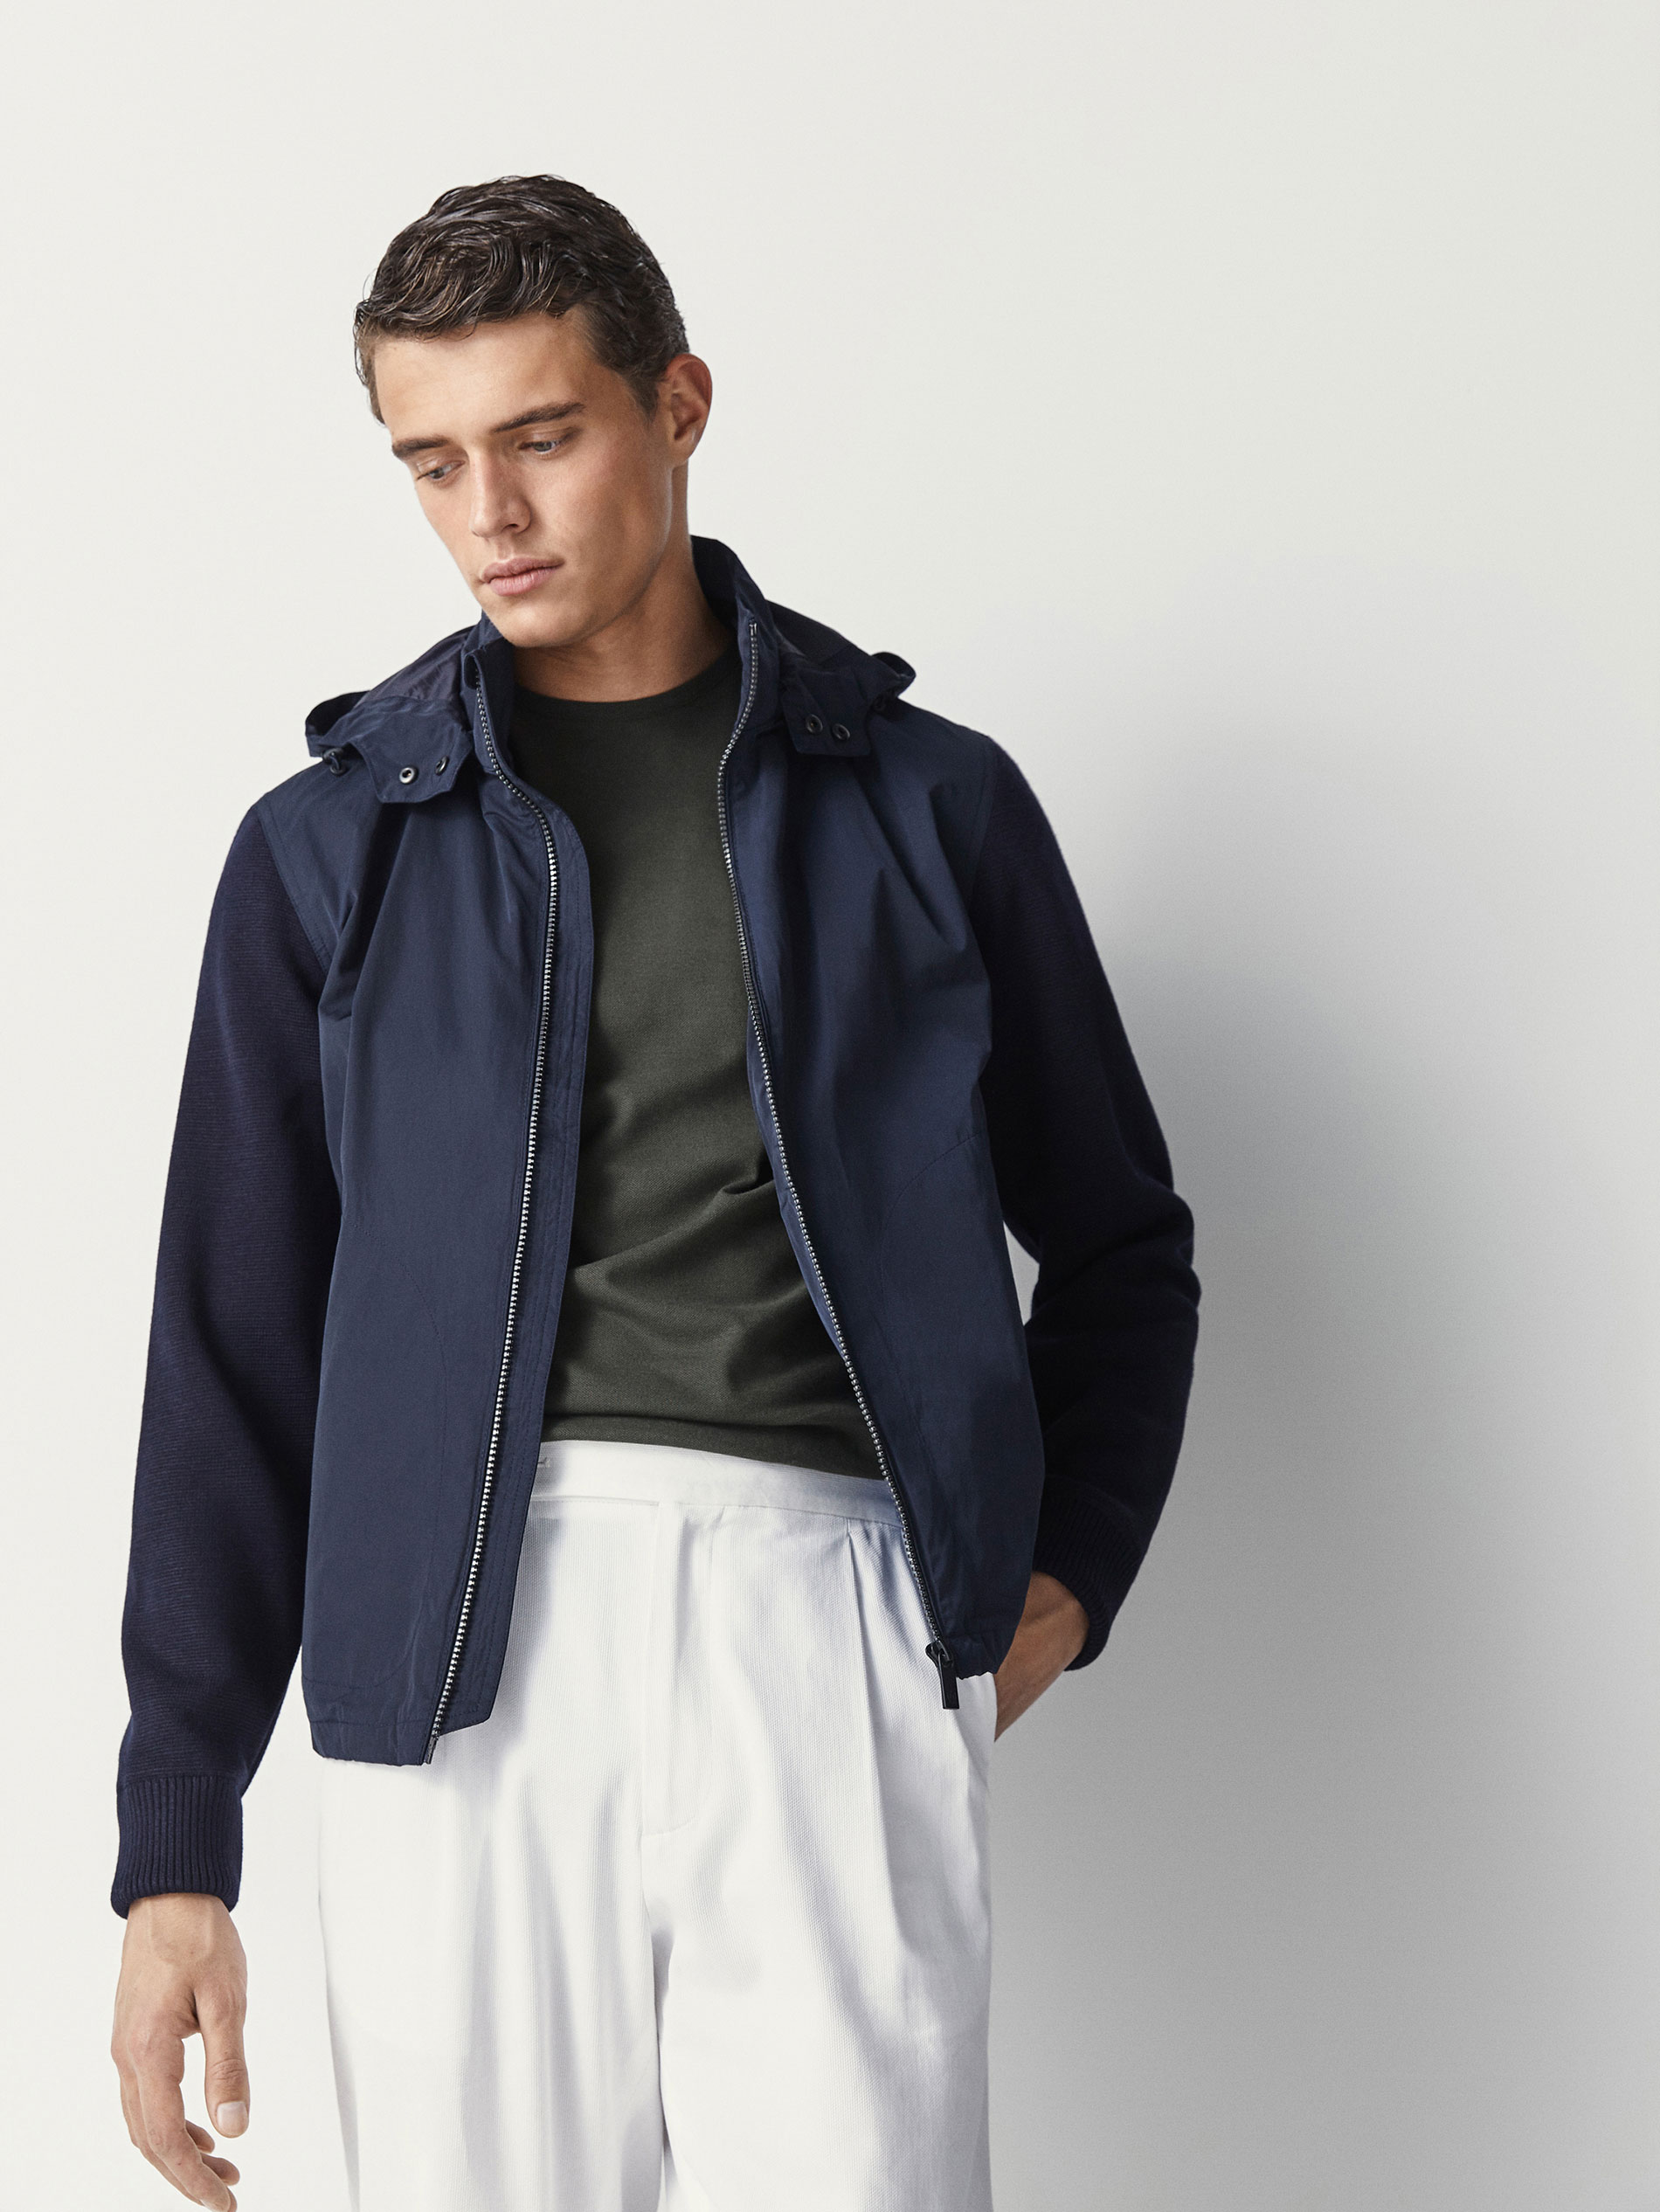 Retro Leather Bomber Jacket UK40reg - Sales Up to -50% Tommy Hilfiger Footlocker Finishline Cheap Price Cheap Find Great Udf66Jn2A